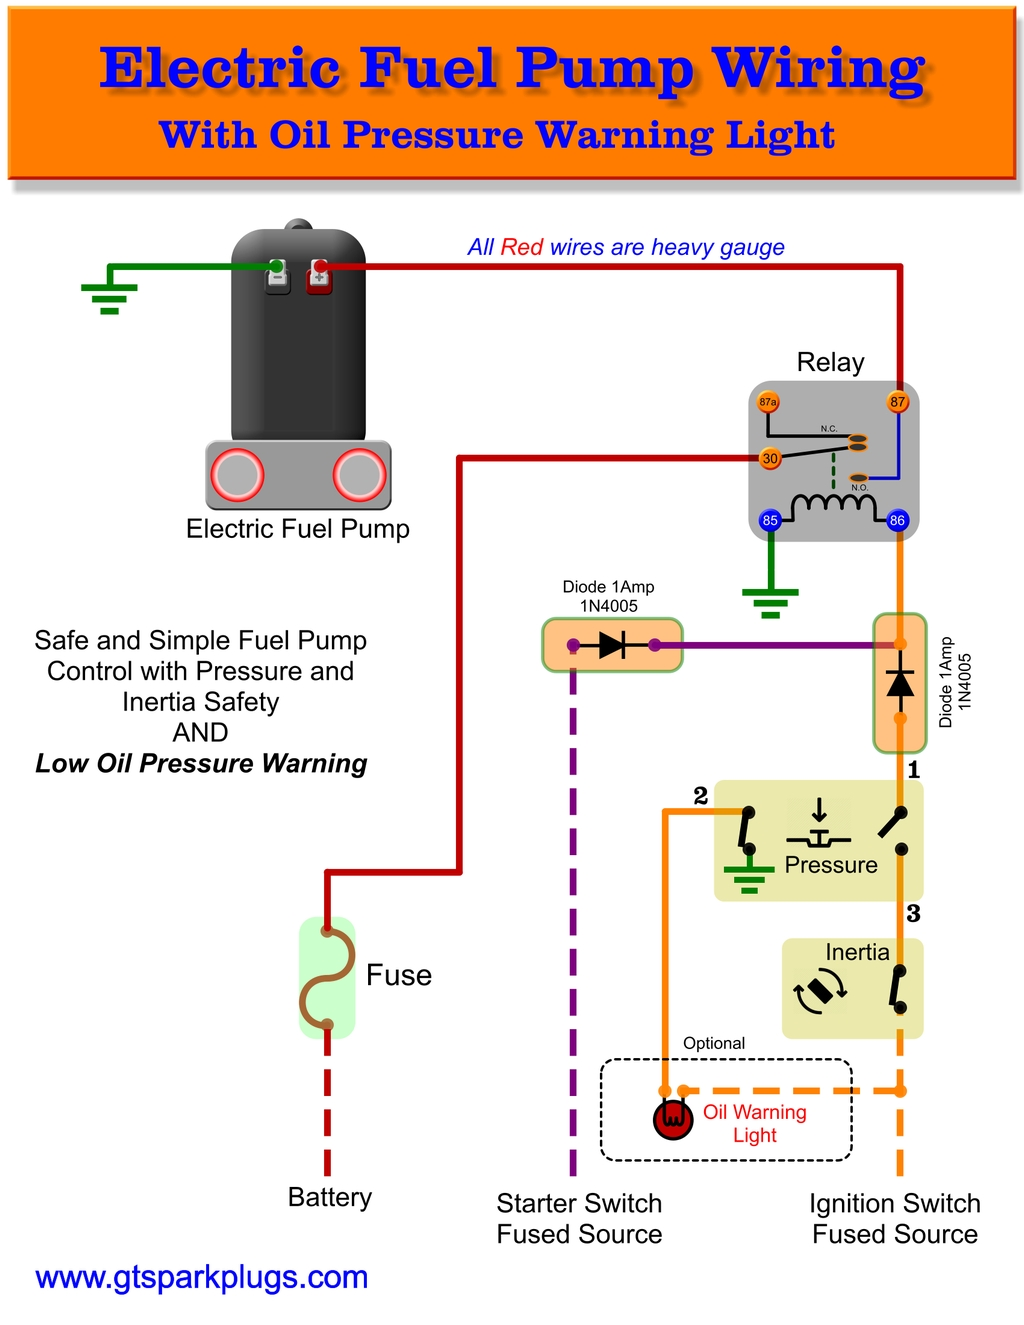 This Is A Simple Guide To Safer Wiring For Your Electric Fuel Pump Spend Some Time Things Up Right And In The Event Of Problem It Can Save You